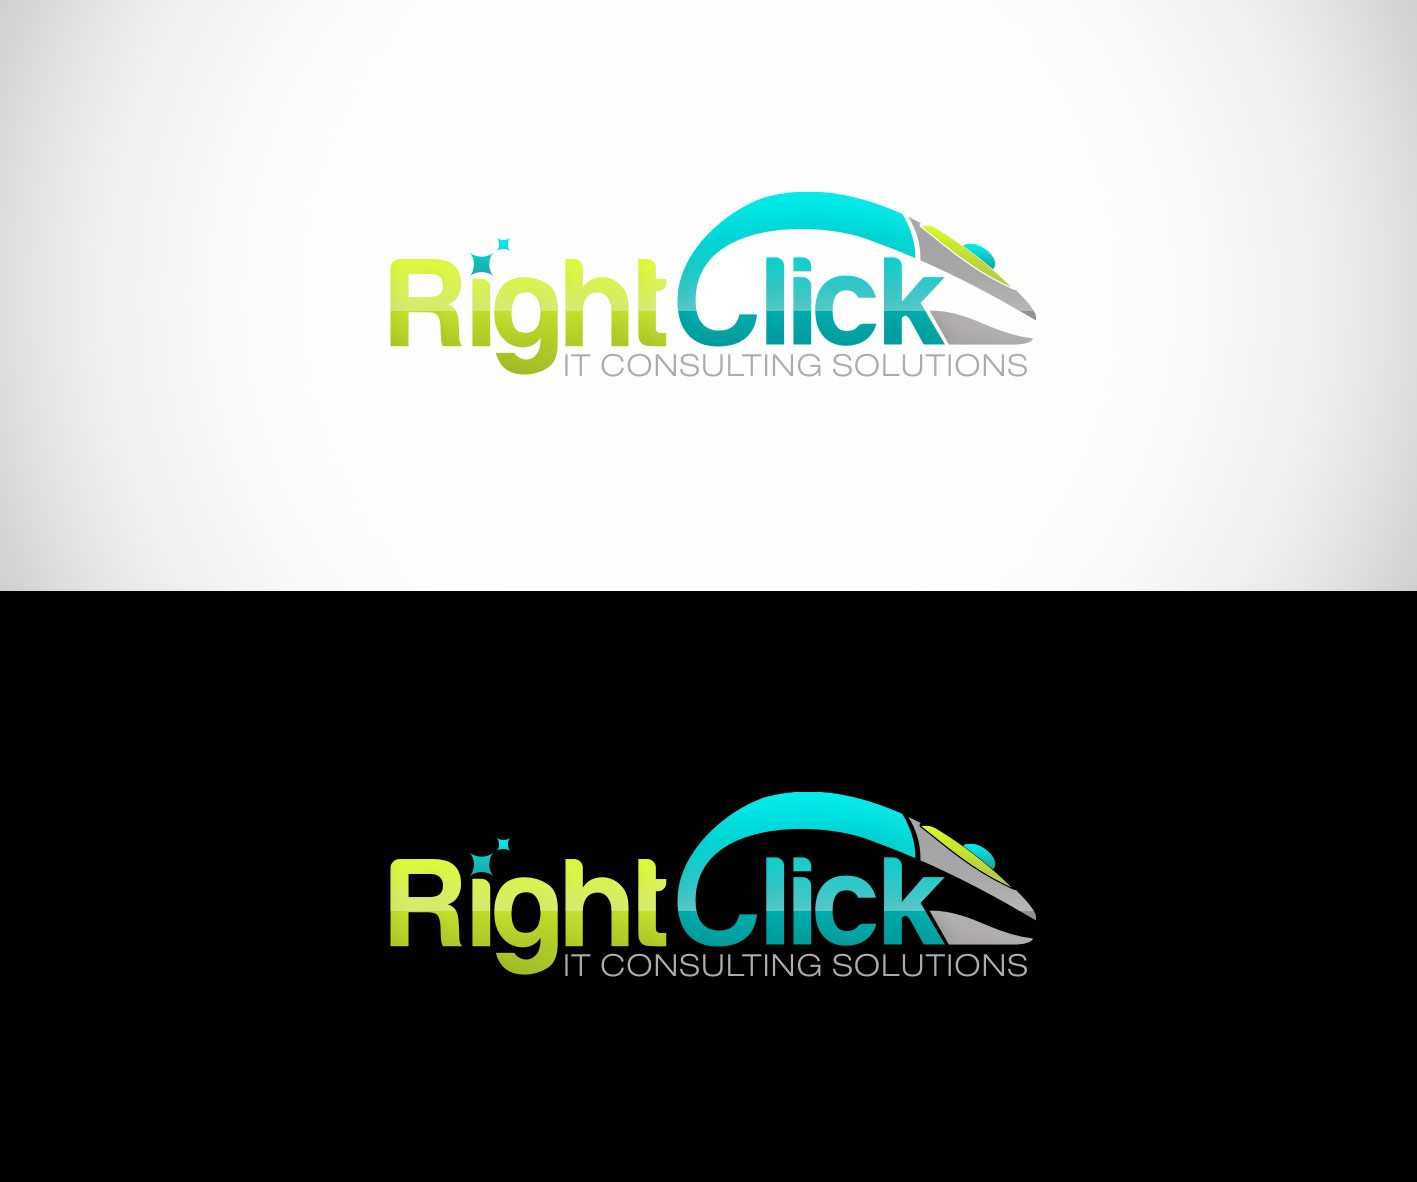 Right Click IT Consulting Solutions needs a new logo